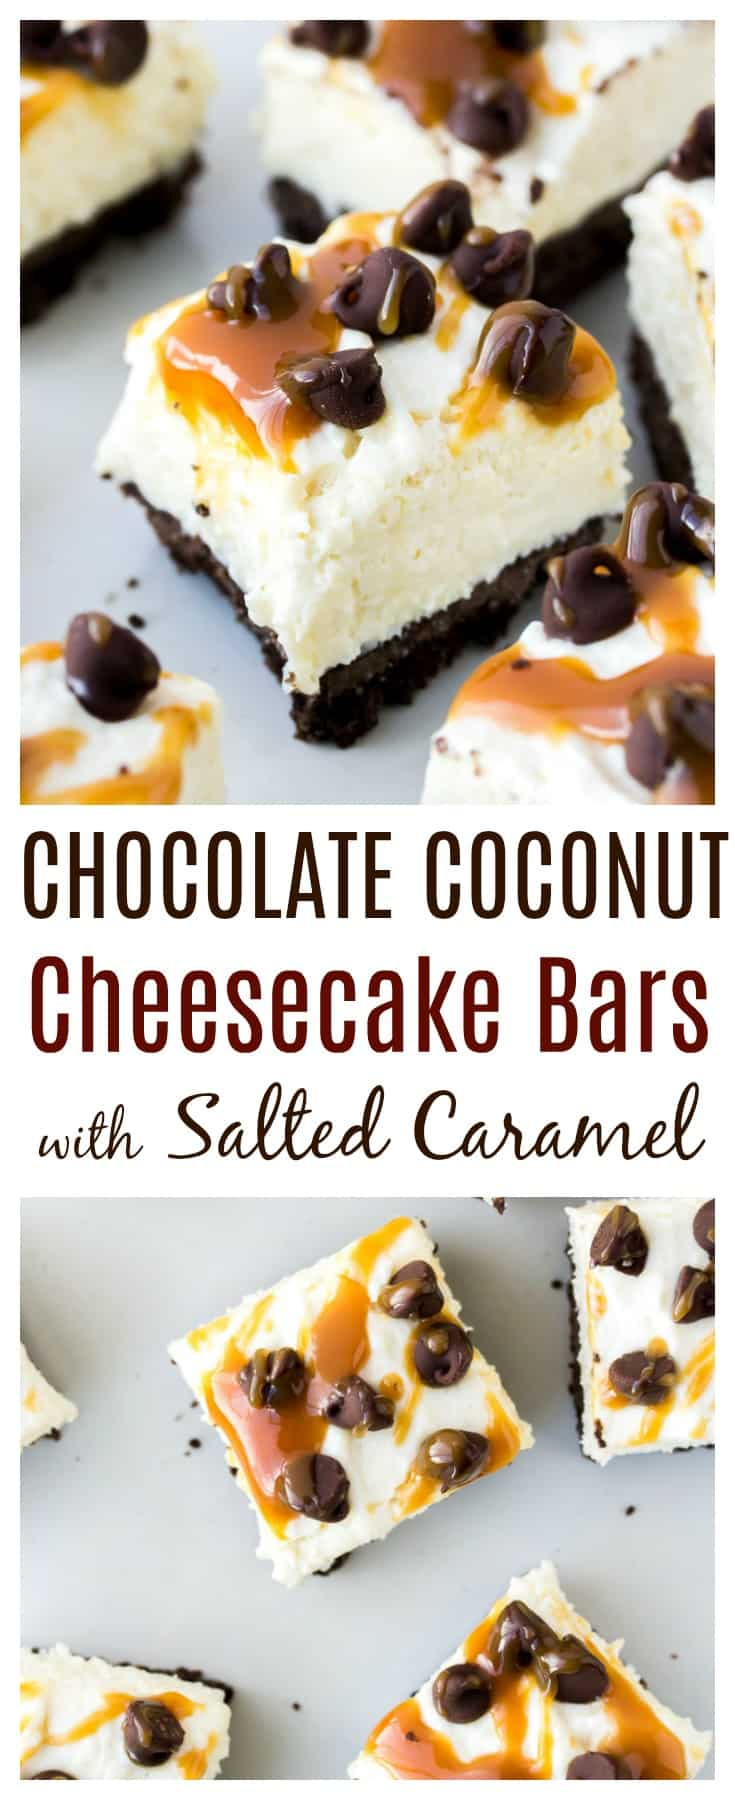 Coconut Cheesecake Bars consist of a chocolate graham cracker crust, topped with a creamy no bake coconut cheesecake. They are then topped with chocolate chips and salted caramel sauce for an easy-to-make decadent dessert!